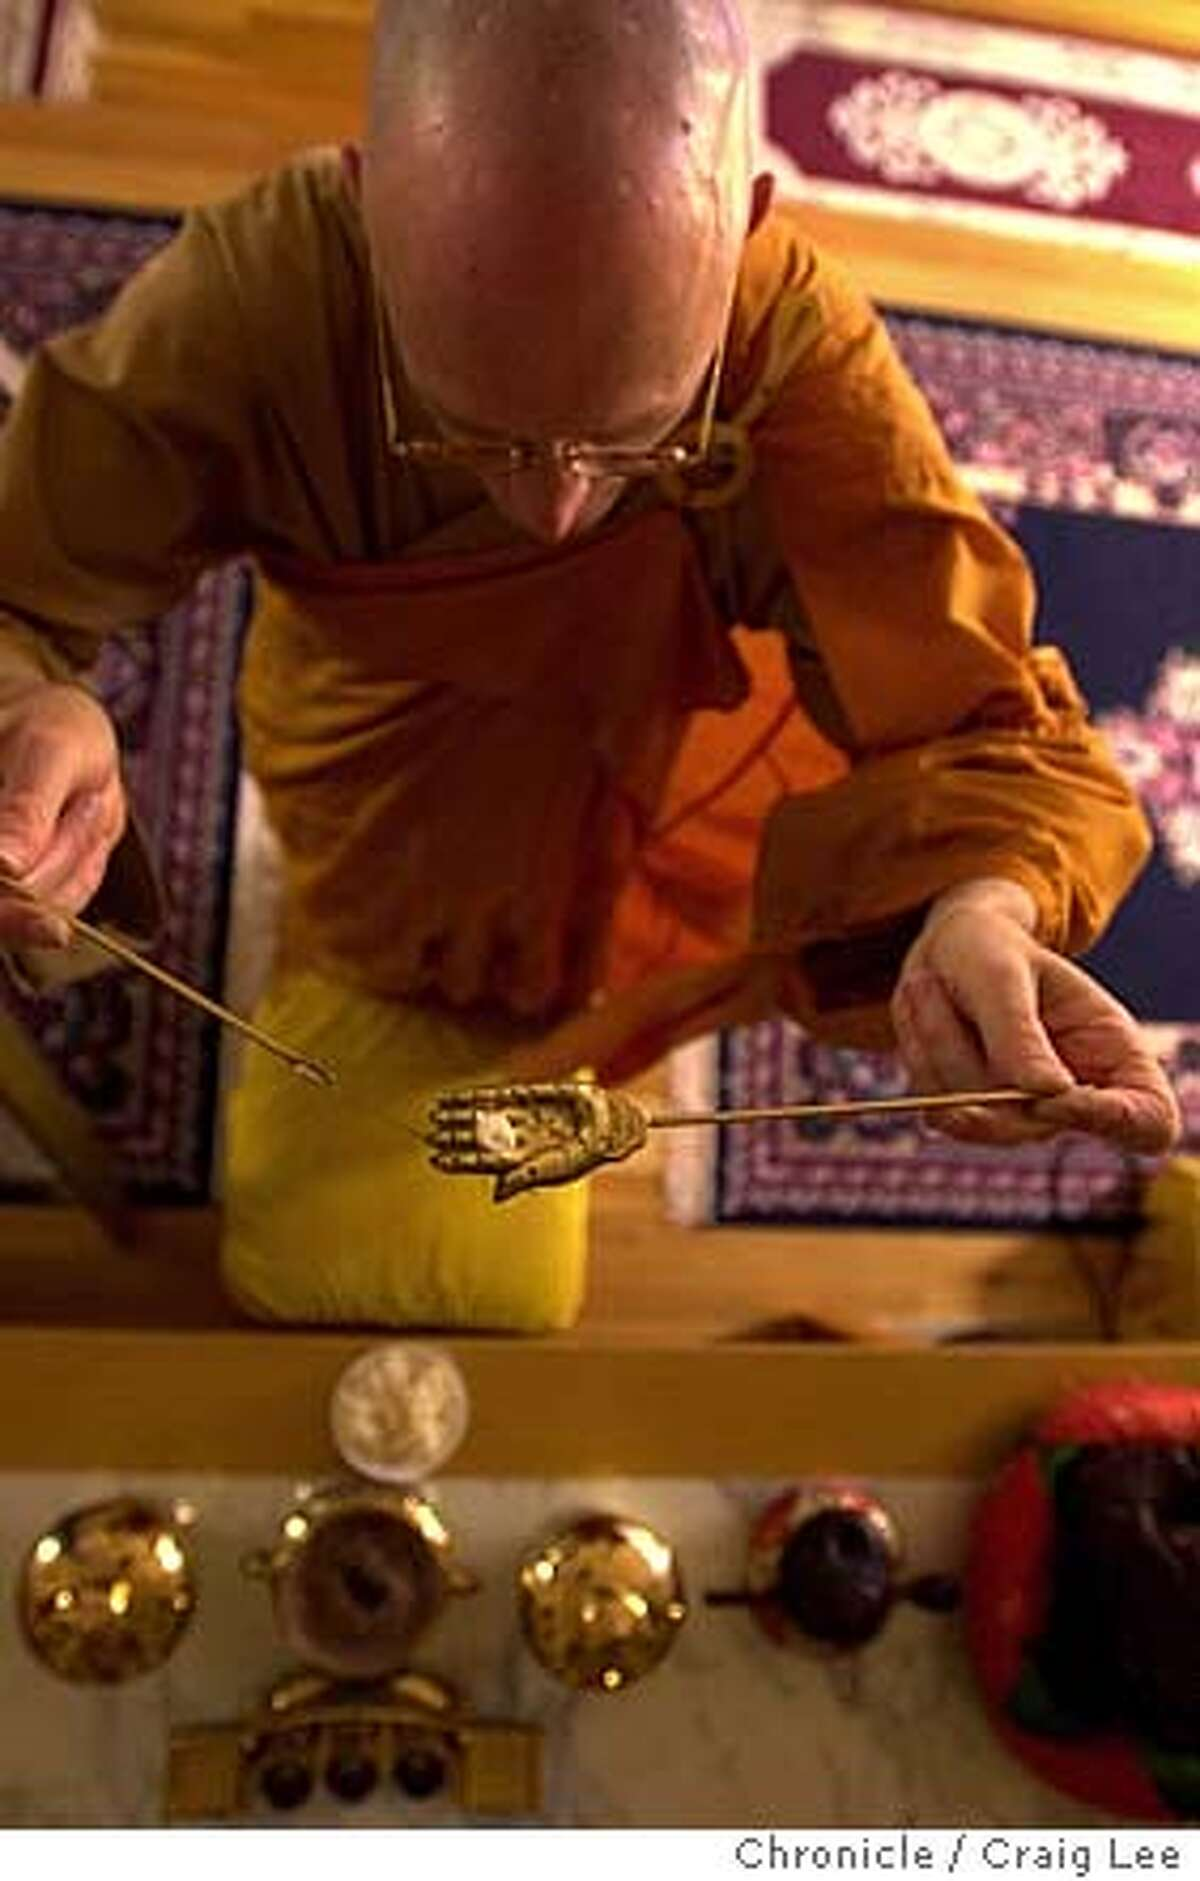 How people pray at meals. This is at the Berkeley Buddhist Monastery at 2304 McKinley Avenue. Photo of Rev. Heng Sure making his ritual offerings to Buddha with 7 grains of rice in the bronze utensils. 5/19/03 in San Francisco. CRAIG LEE/The Chronicle